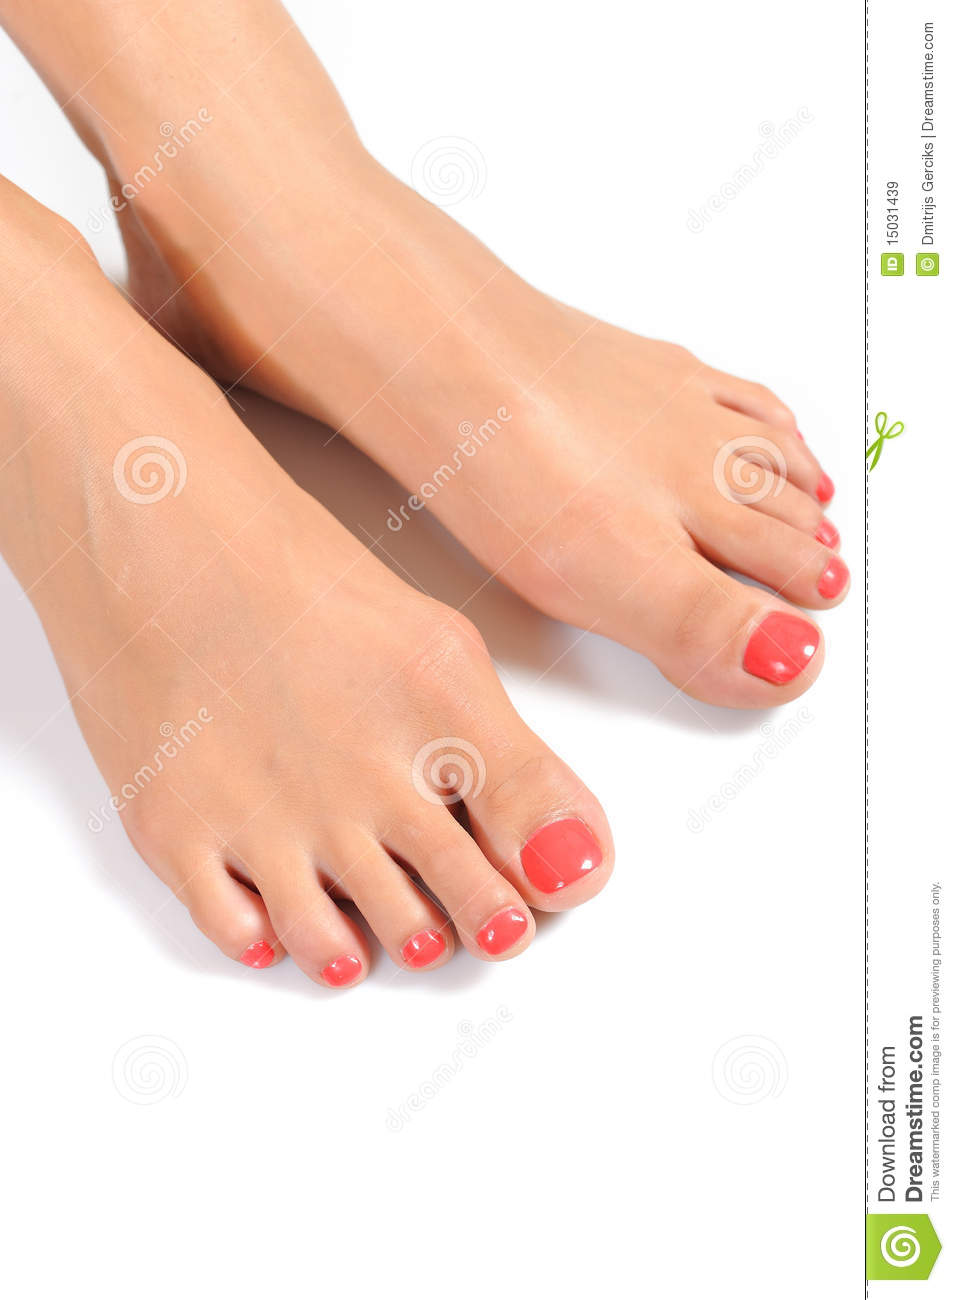 Beautiful Feet With Perfect Spa Pedicure Royalty Free ...